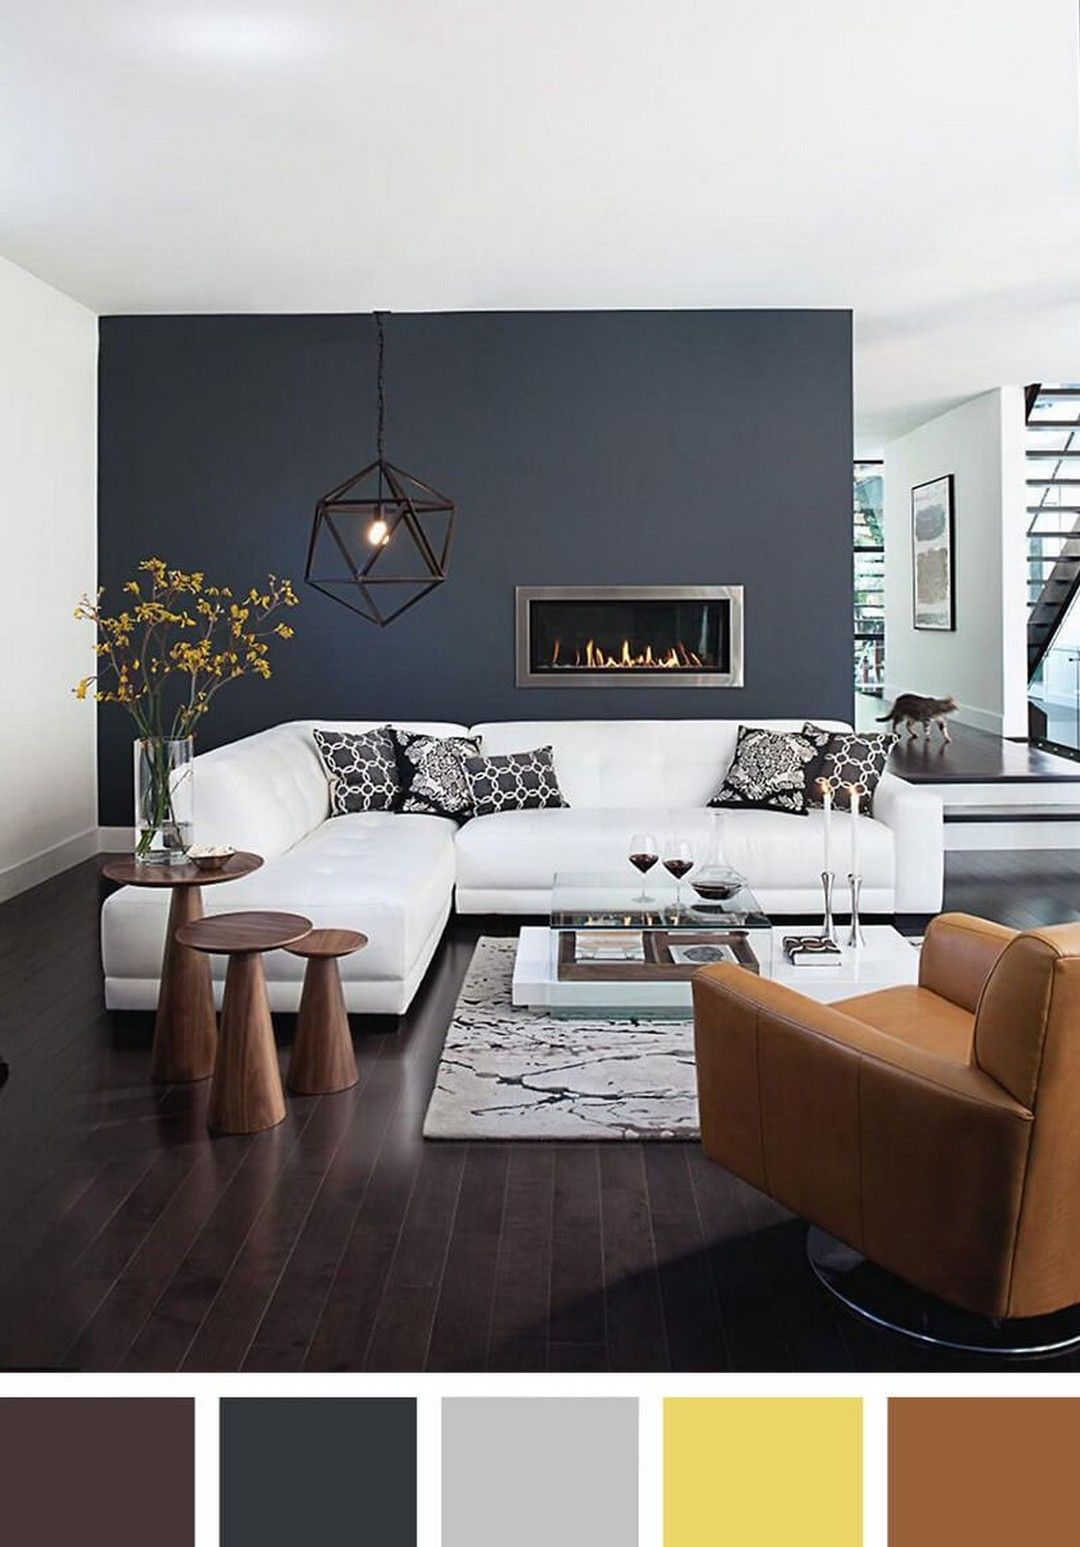 10 Gorgeous And Modern Chic Home Decor Ideas To Improve In Many Ways Living Room Decor Modern White Sofa Design Modern Living Room